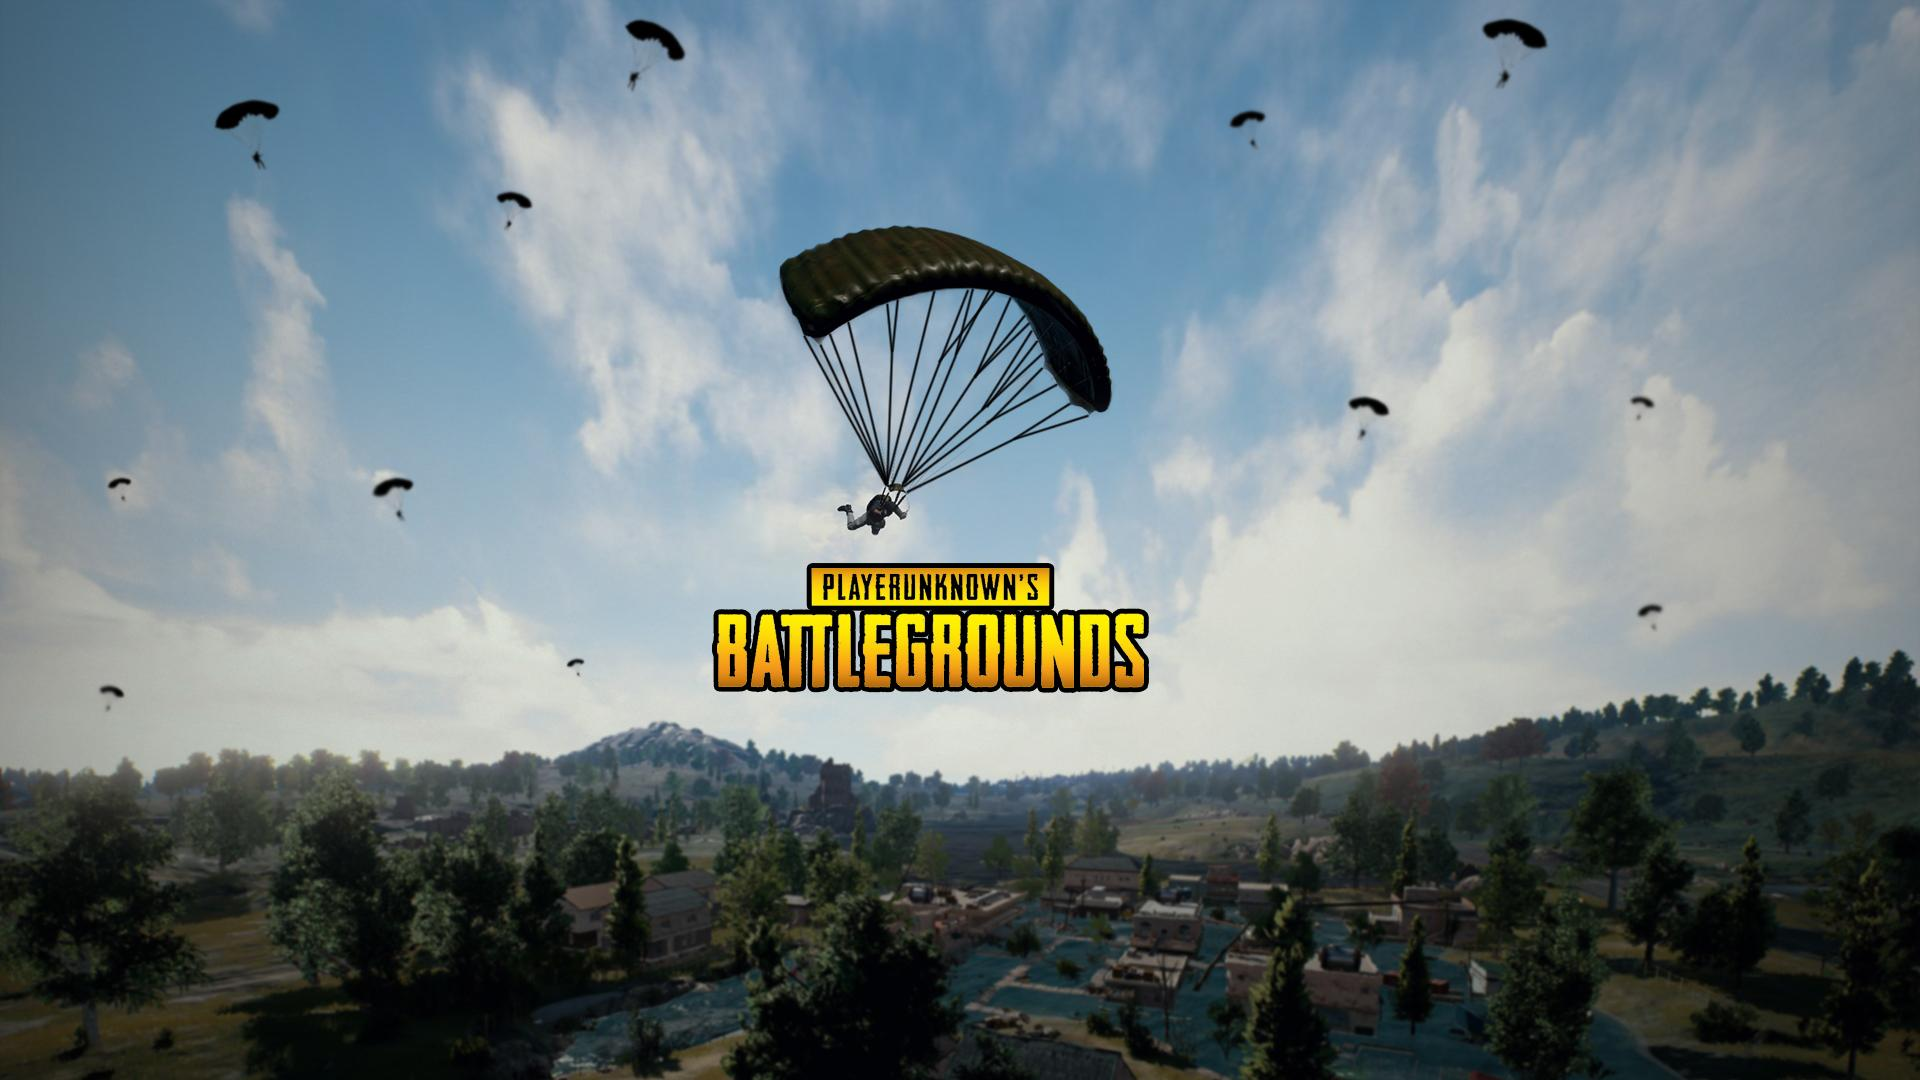 wp3276868 pubg 4k wallpapers - Player Unknown's Battlegrounds (PUBG) 4K Parachute - Pubg wallpaper phone, pubg wallpaper iphone, pubg wallpaper 1920x1080 hd, pubg hd wallpapers, pubg 4k wallpapers, pubg 4k parachute, Player Unknown's Battlegrounds 4k wallpapers